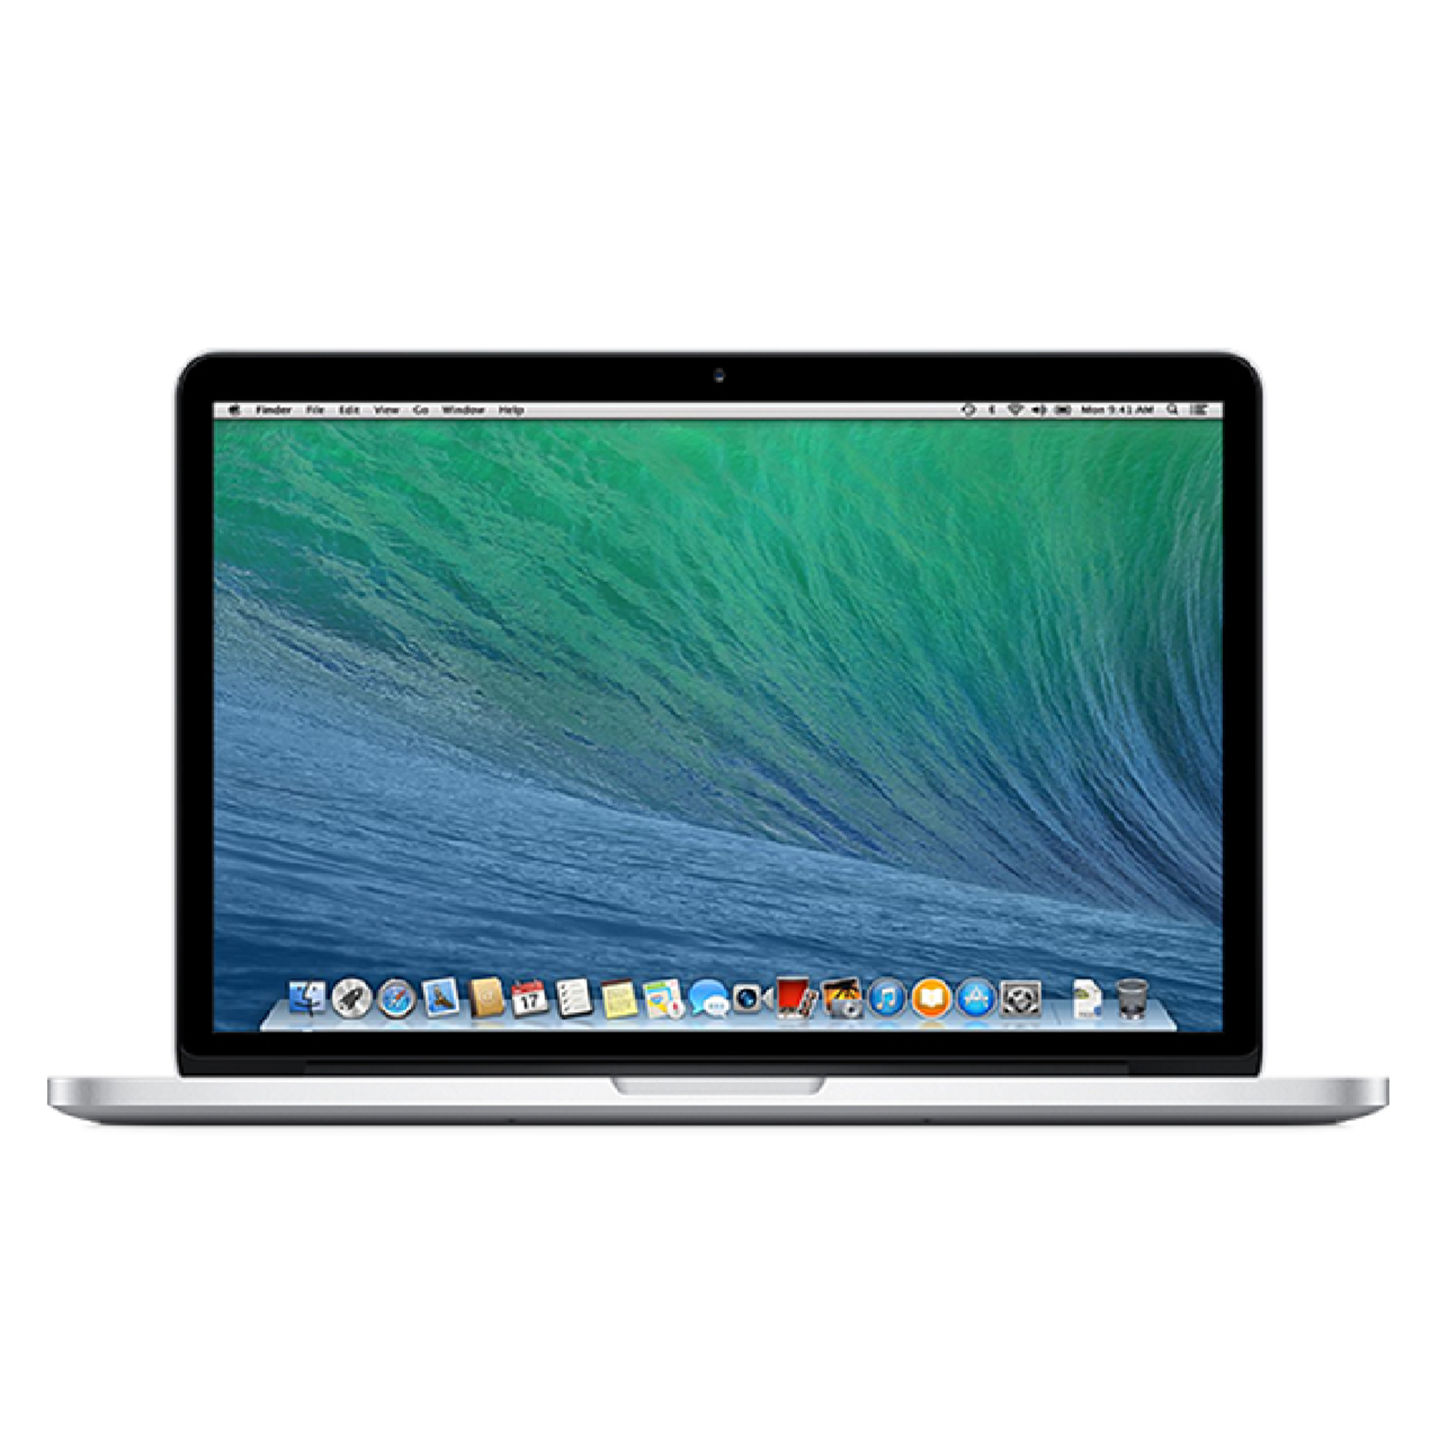 MacBook Pro (Retina, 13-inch, Late 2013)Core i5/4GB/SSD128GB E786